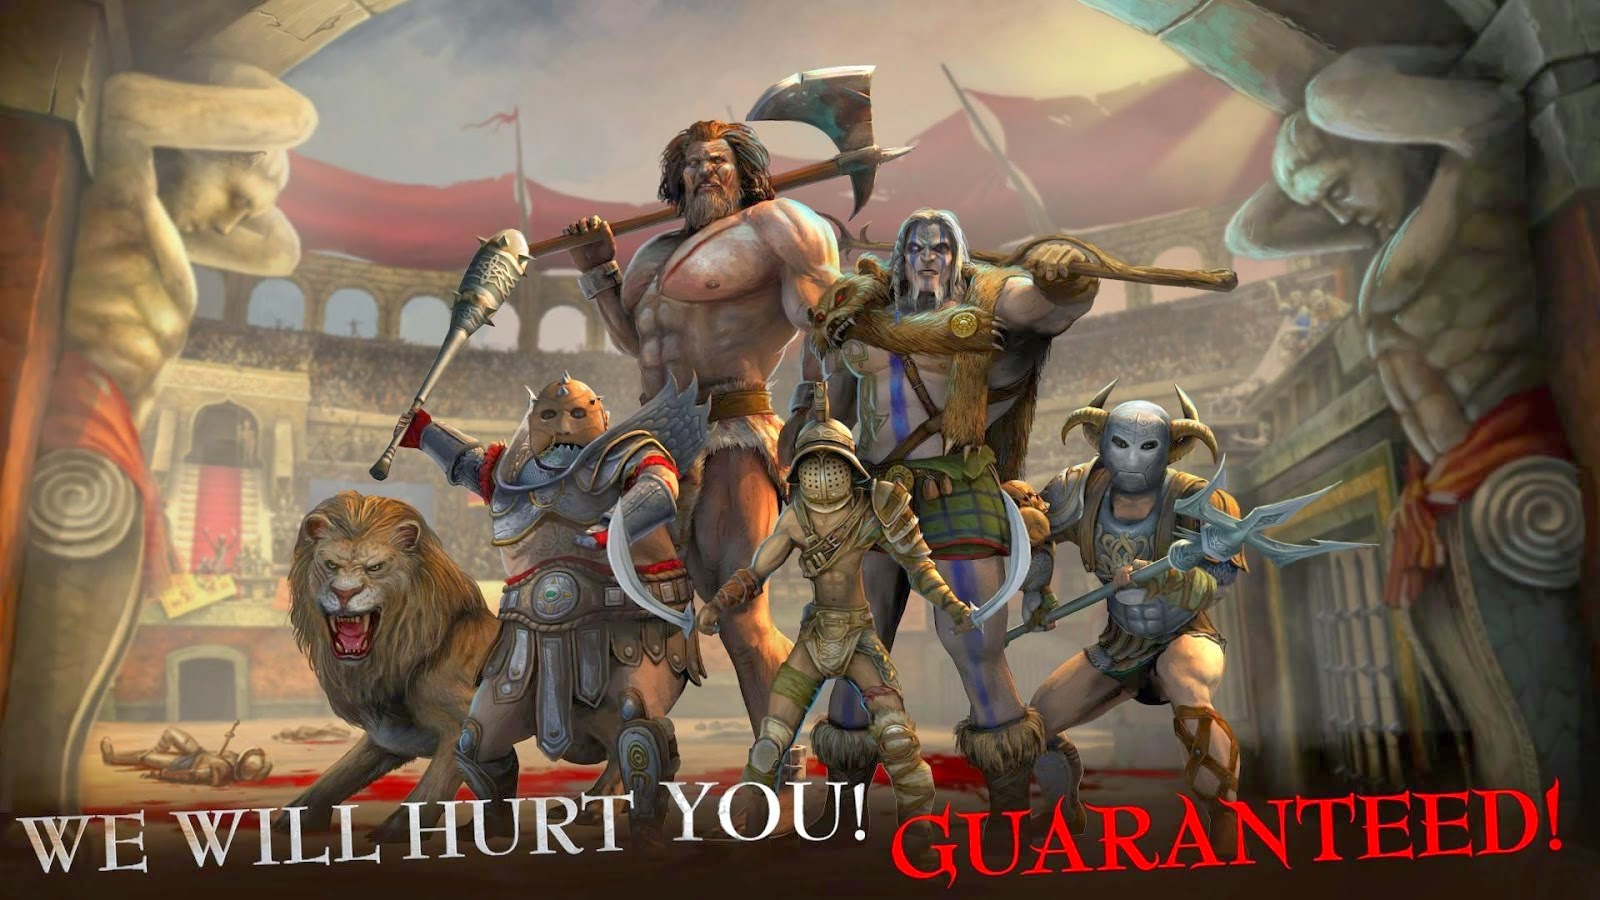 I, Gladiator v 1.10.0.21621 Mod Apk screenshot by jembercyber